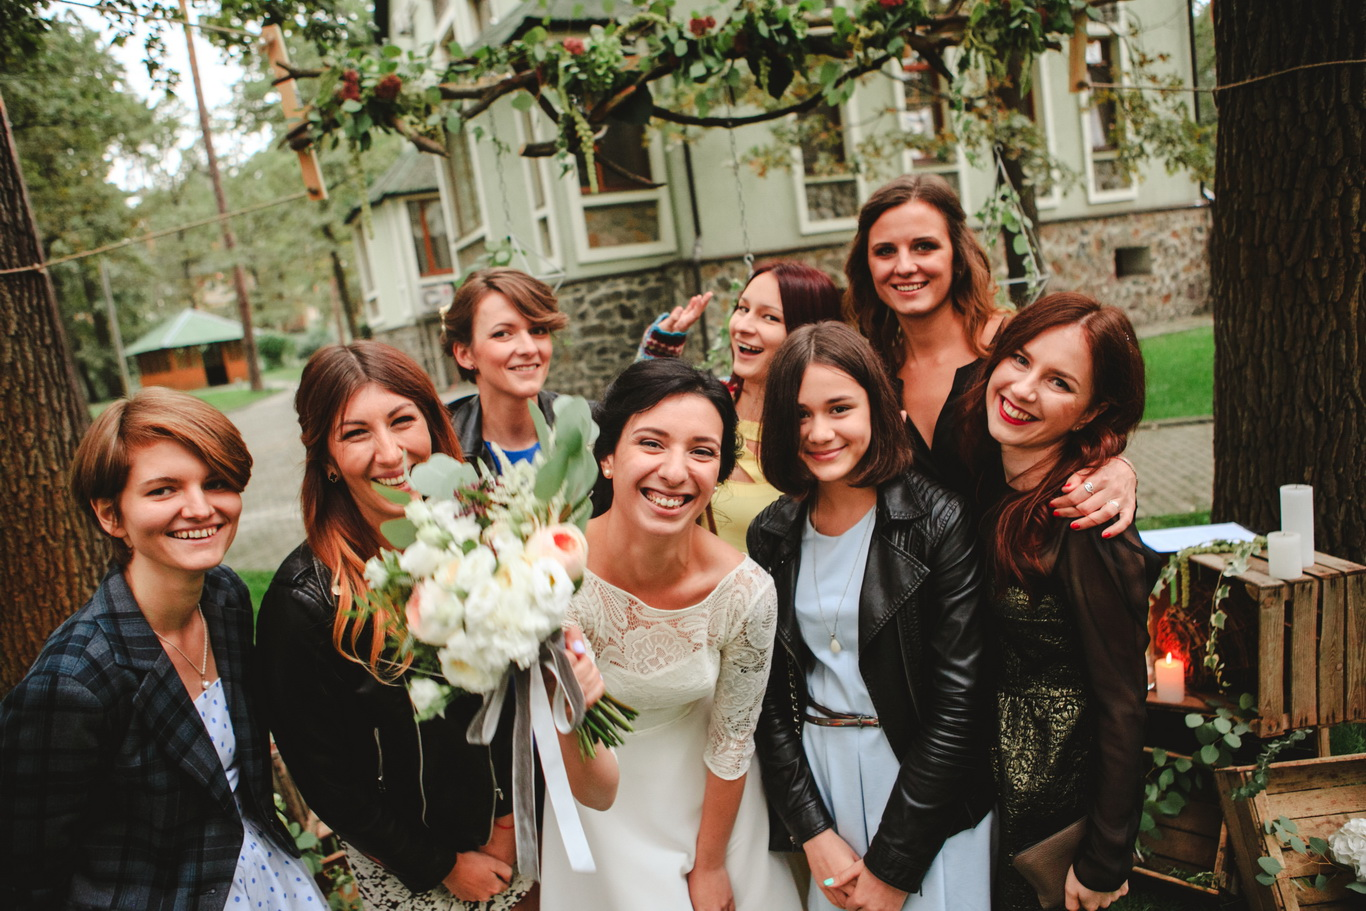 Apple-Pie-Weddings-Jane-Nikita-Kyiv-Ukraine-40